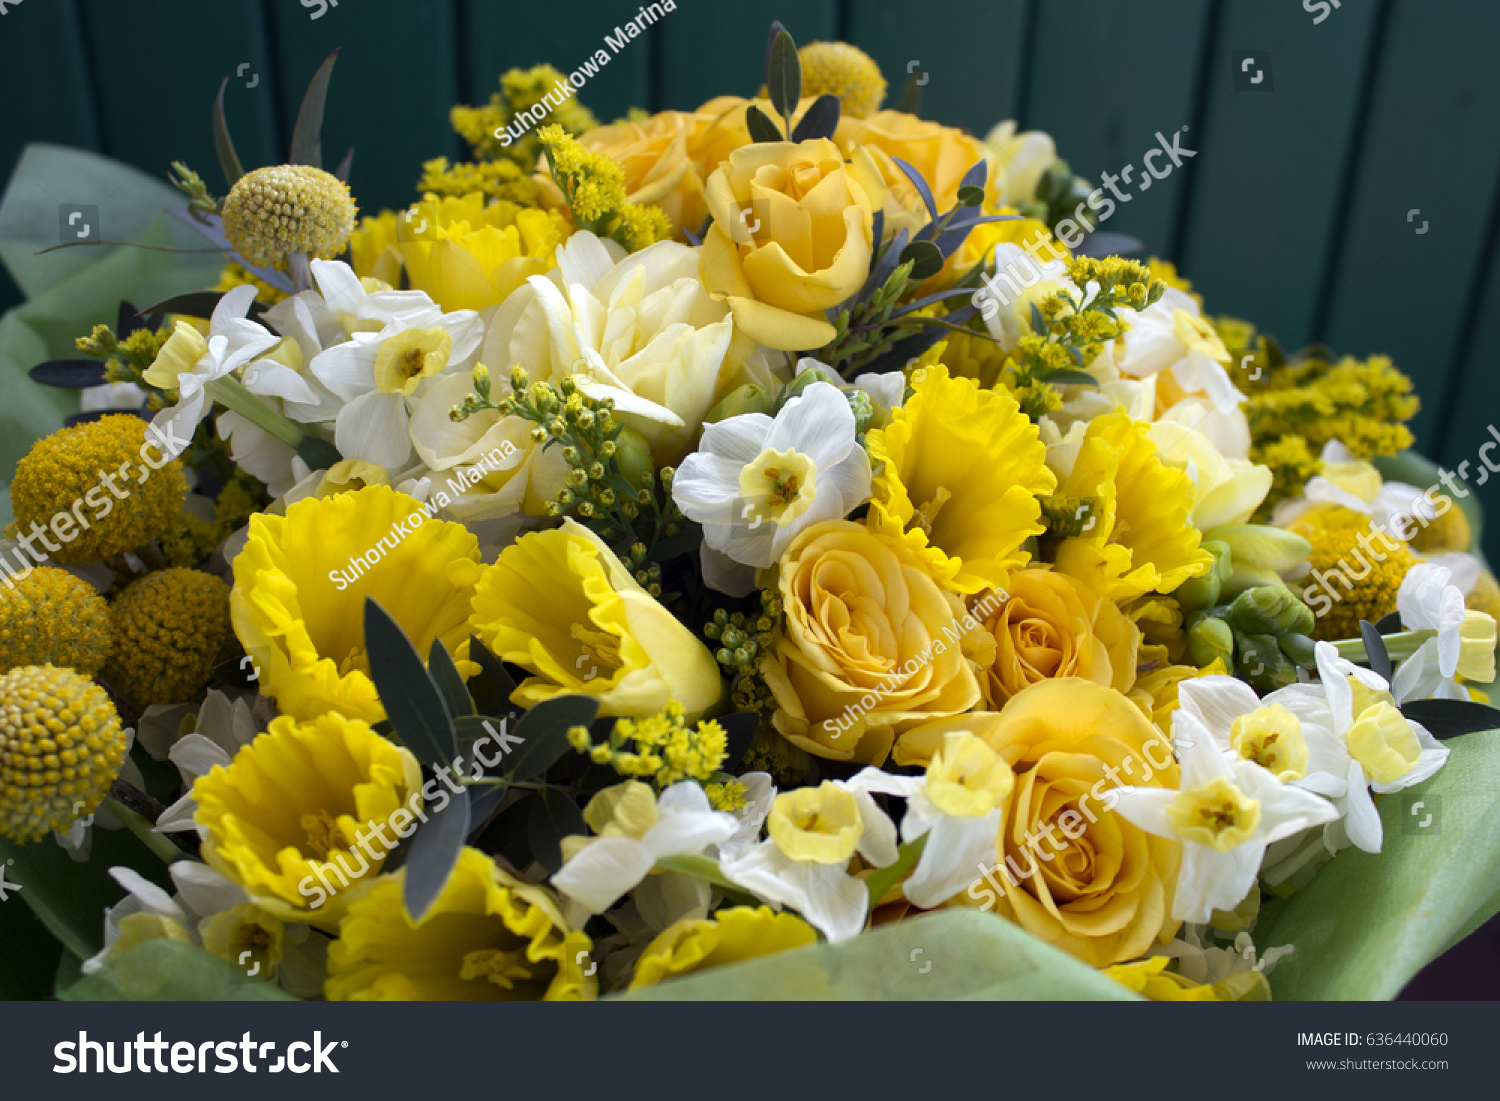 Bunch yellow flowers photo stock photo 100 legal protection bunch of yellow flowers photo mightylinksfo